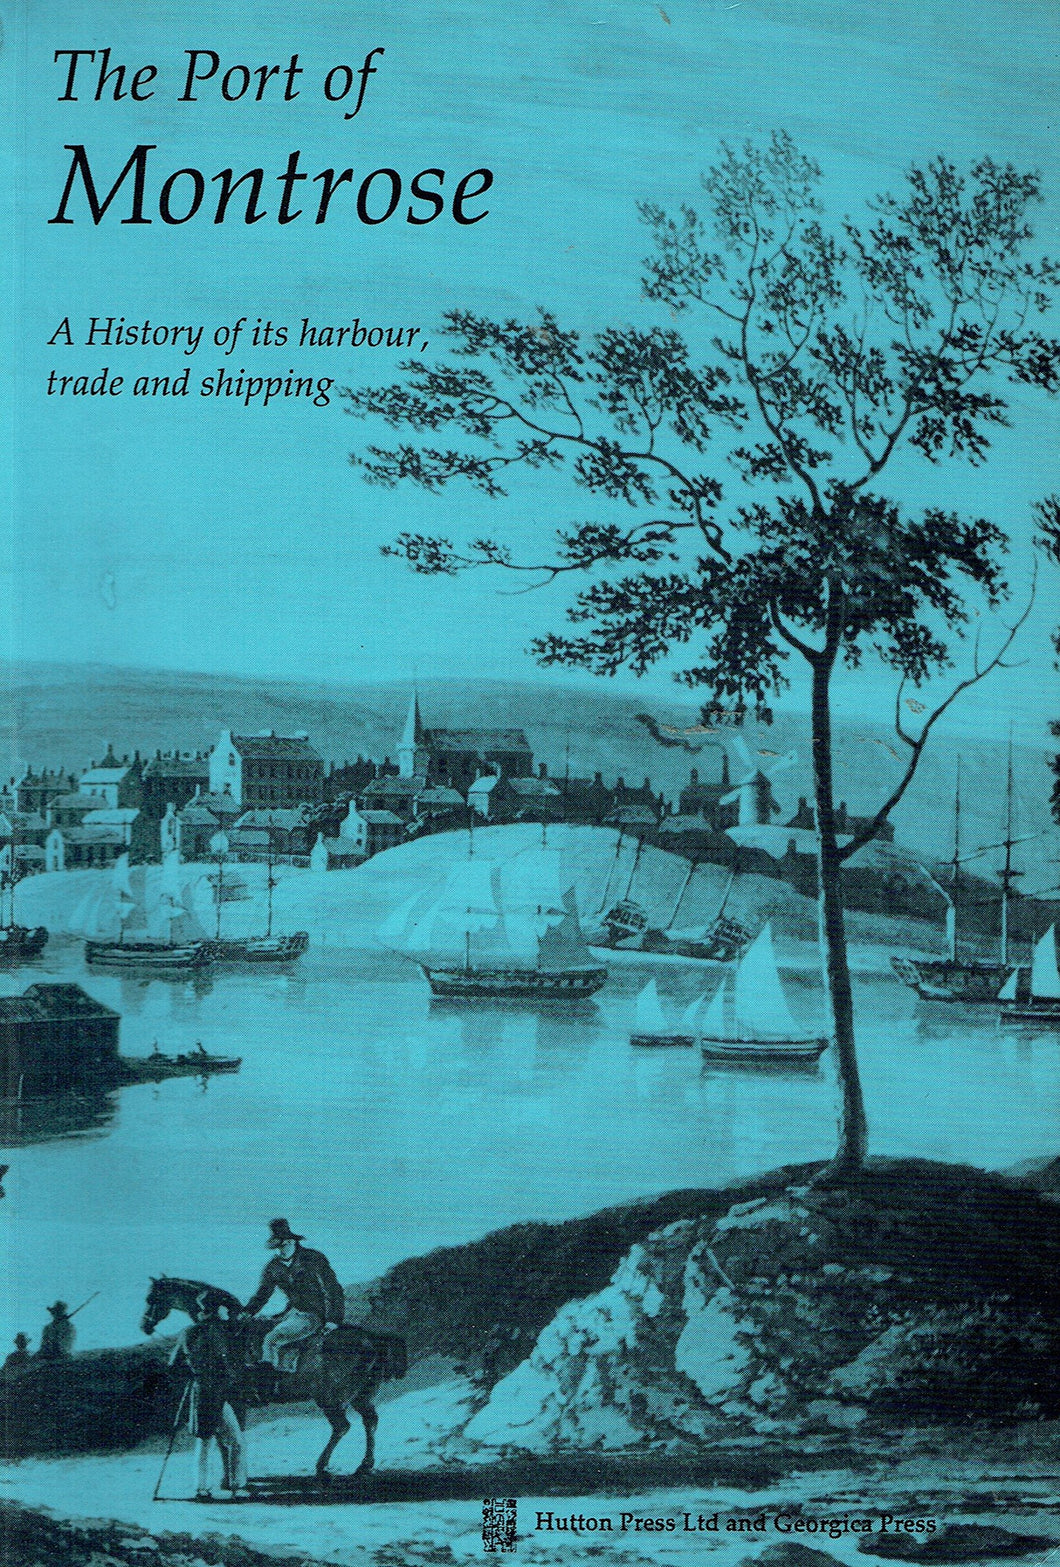 Port of Montrose: A History of Its Harbour, Trade and Shipping